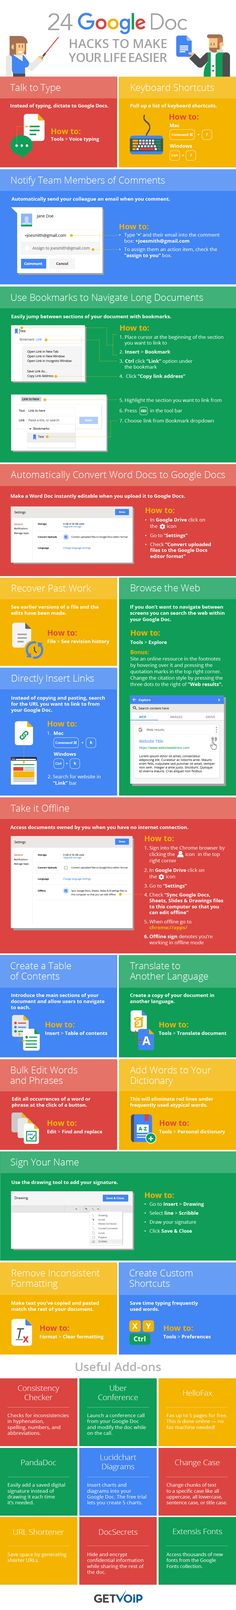 24 Google Docs Hacks That Make Your Life Easier [Infographic]